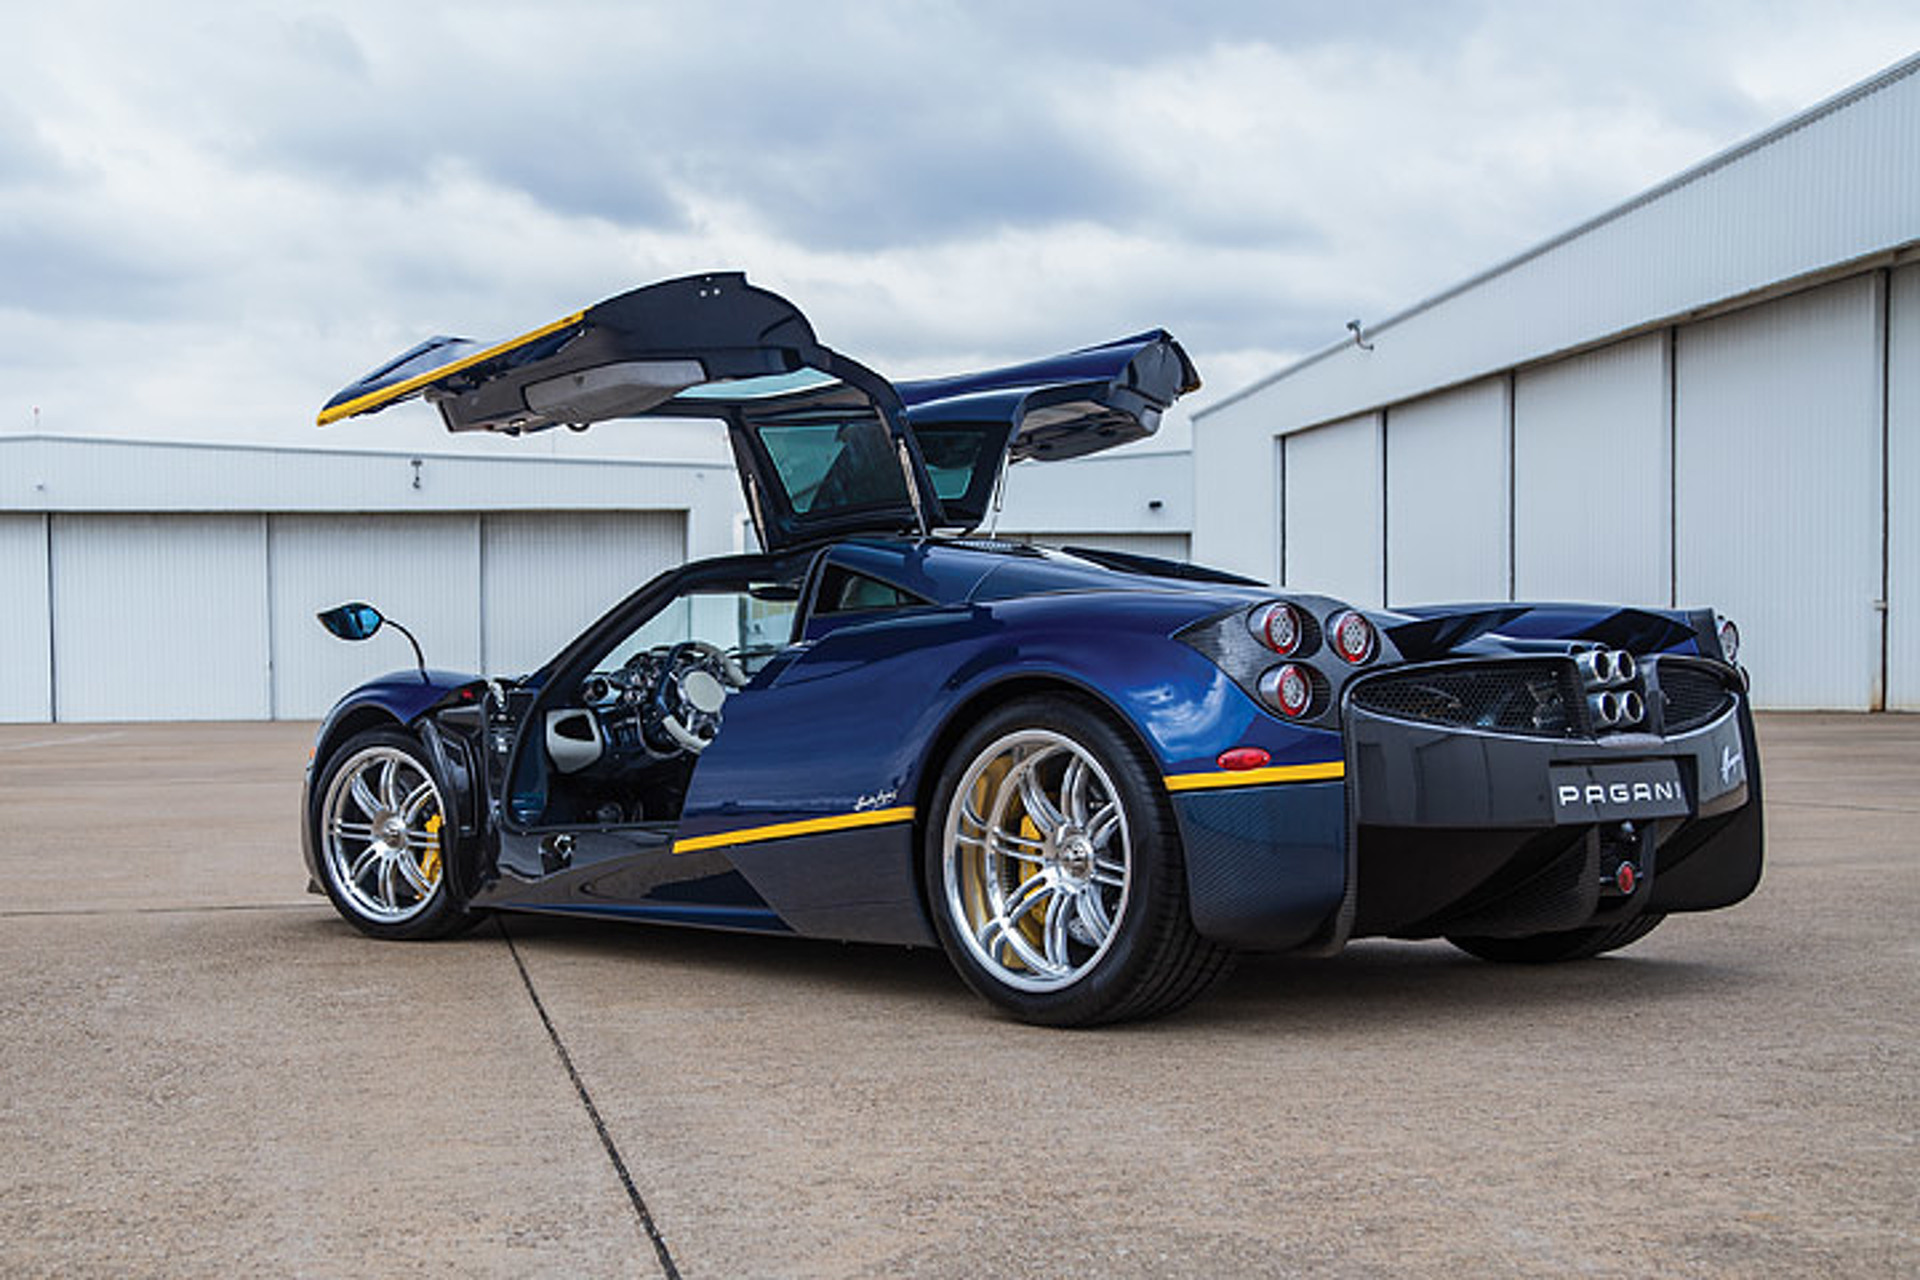 This Million Dollar Pagani Huayra Has Over $260,000 in Options